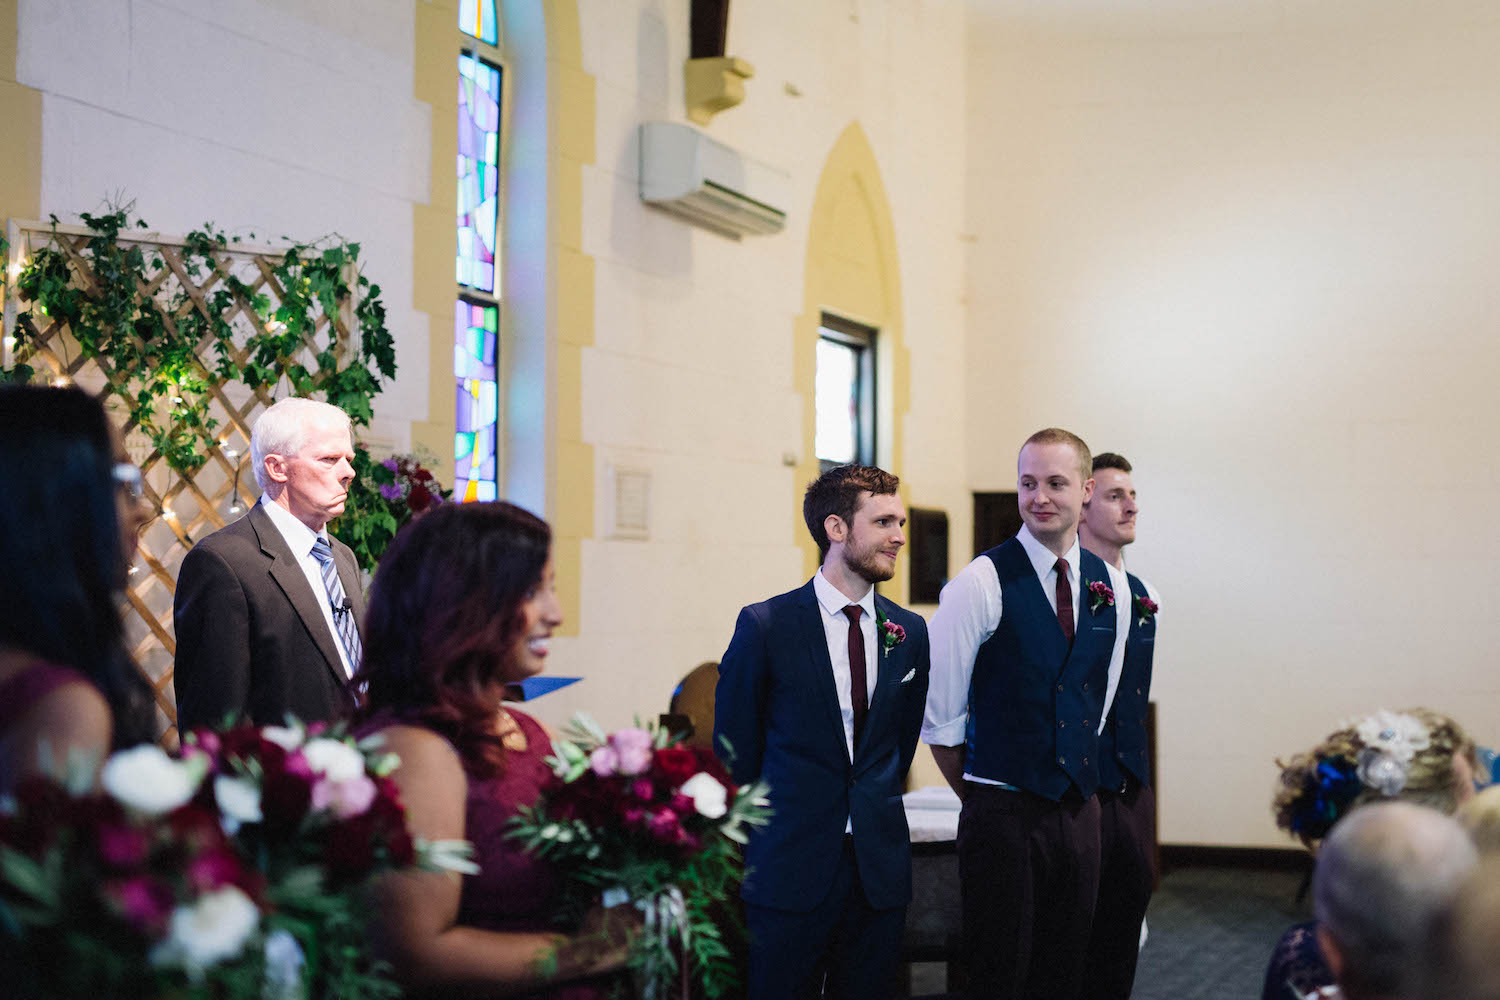 Groom's reaction as the bride arrives at the ceremony in Subiaco, Australia.